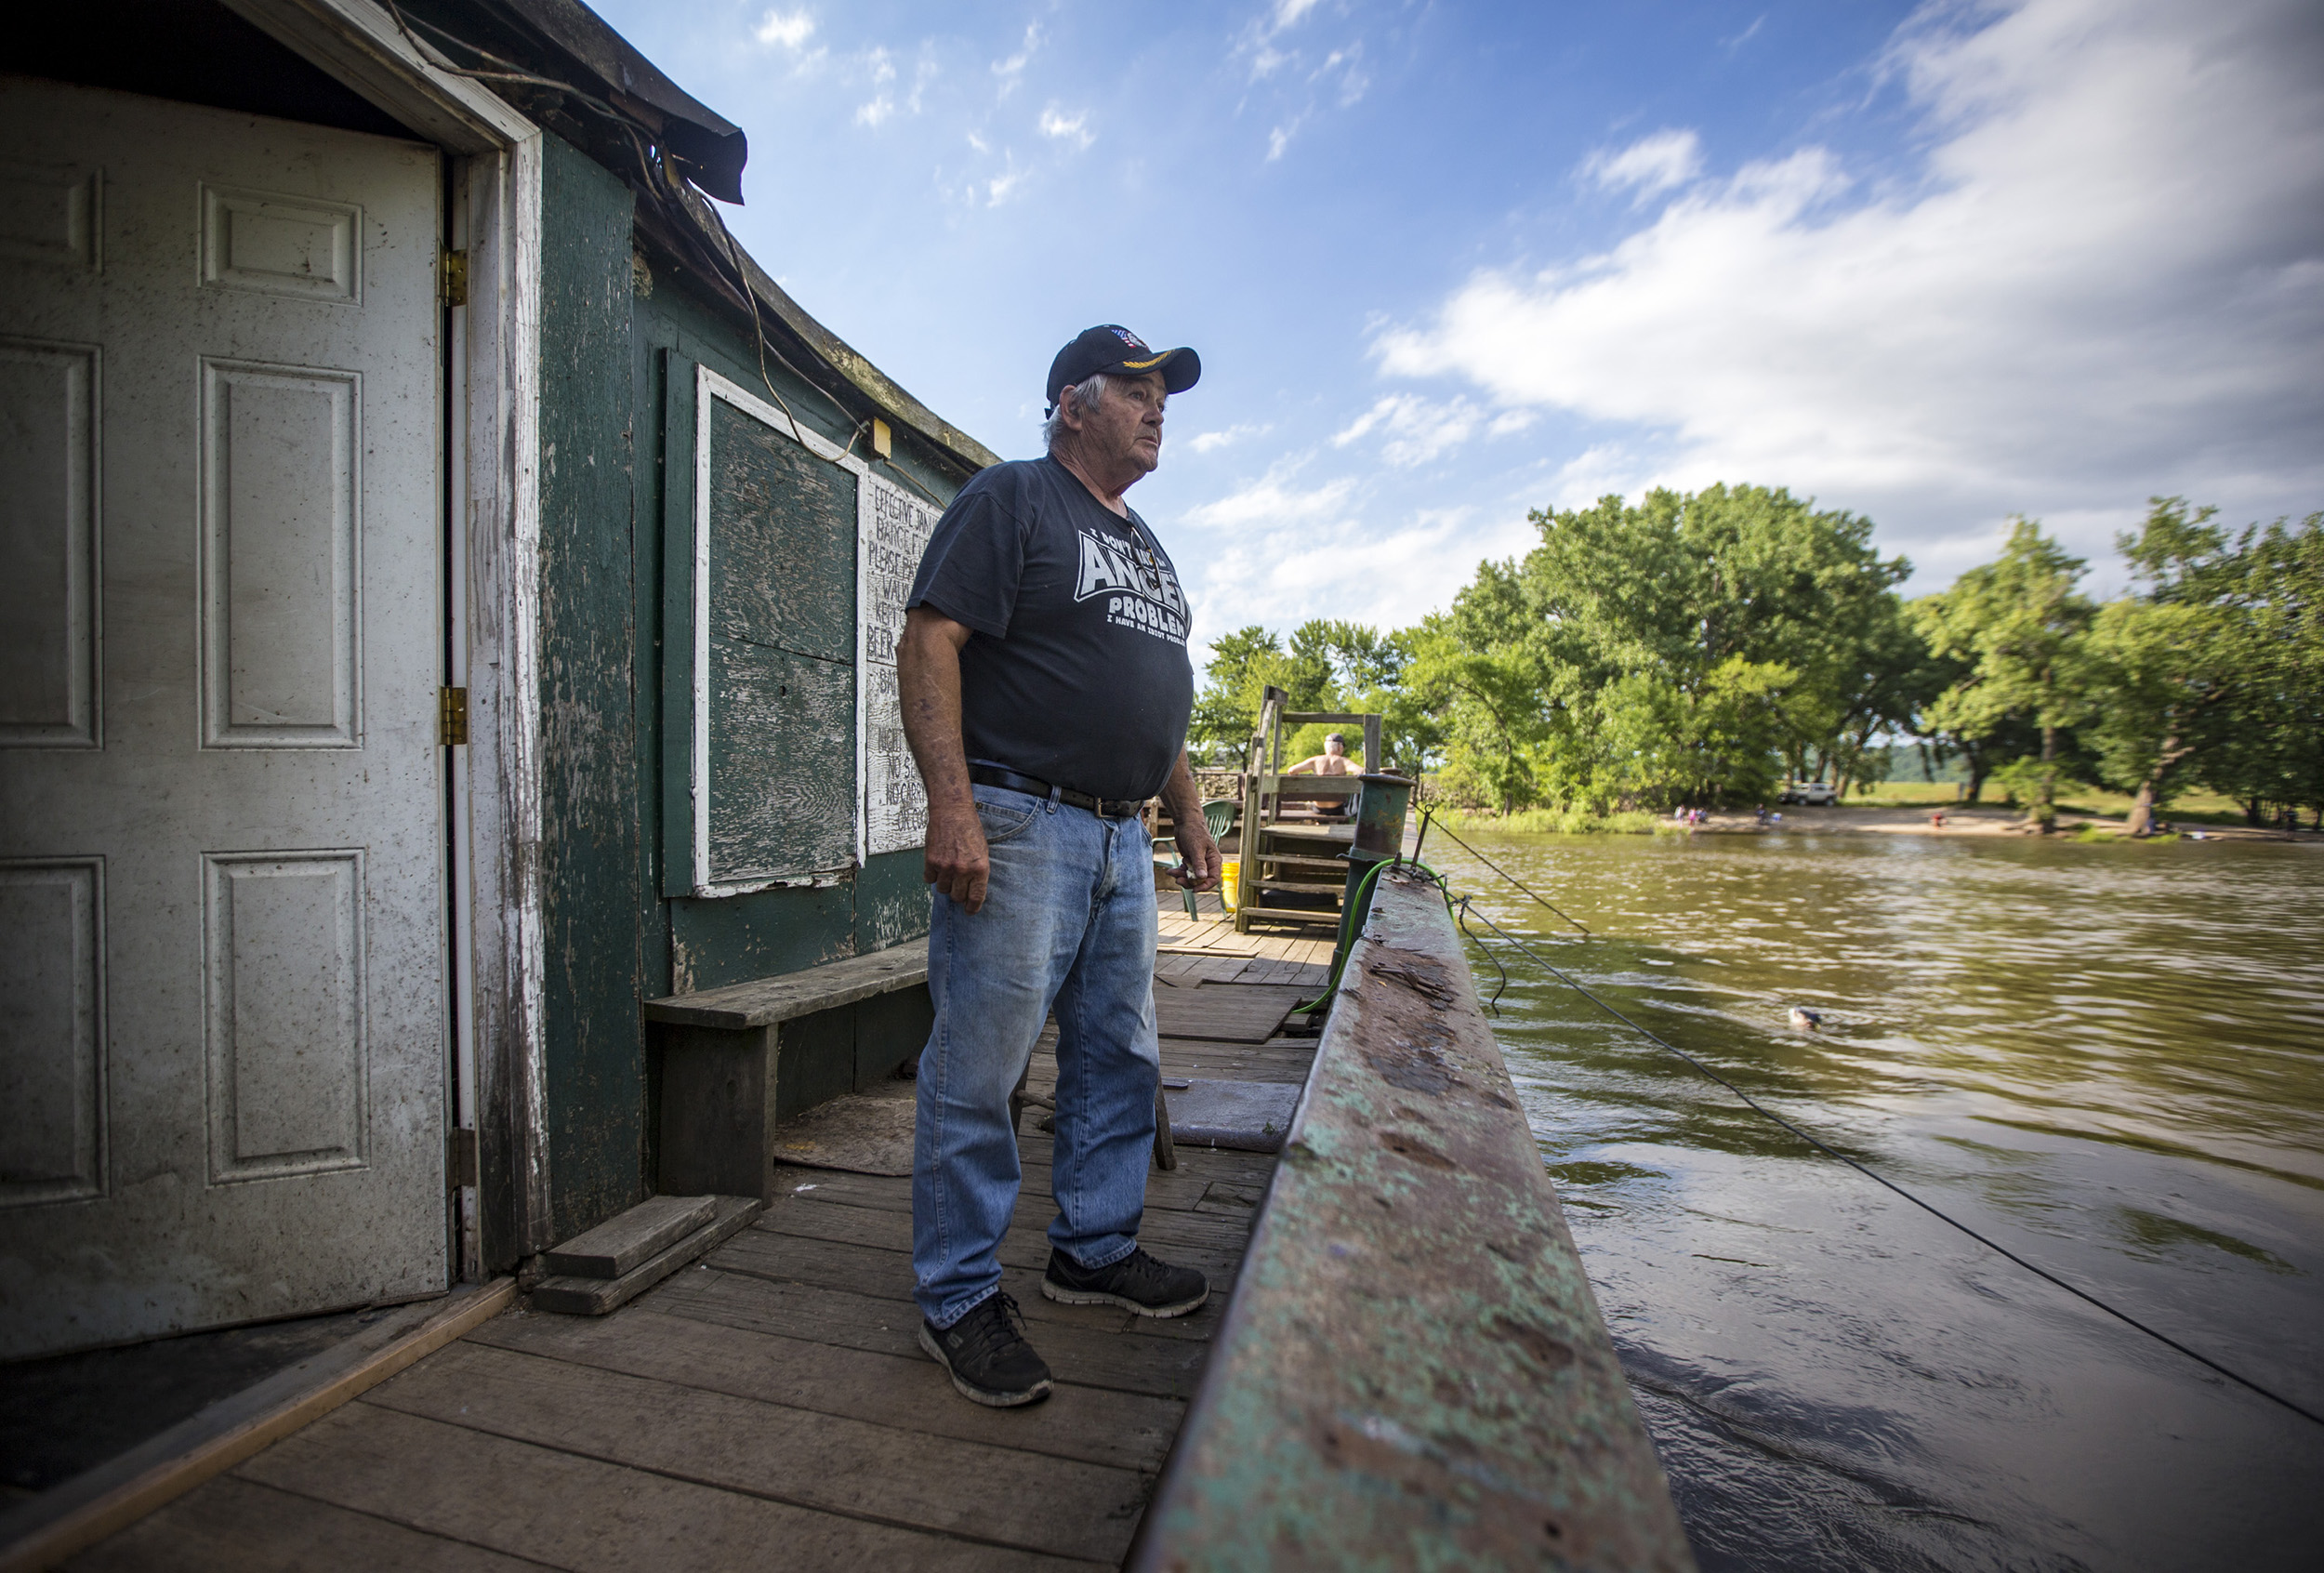 Carl Hanson, owner of the Eagle Point Fishing Barge looks out to shore watching a pair of ducks in the water in Hazel Green, Wisconsin, Tuesday, June 20, 2017. Hanson has owned the barge for 23 years which started life in 1916 and was previously used to haul horses for the calvary in World War I but has been used for fishing since 1955. Hanson had plans in the works to replace the barge with a newer one before the end of summer.